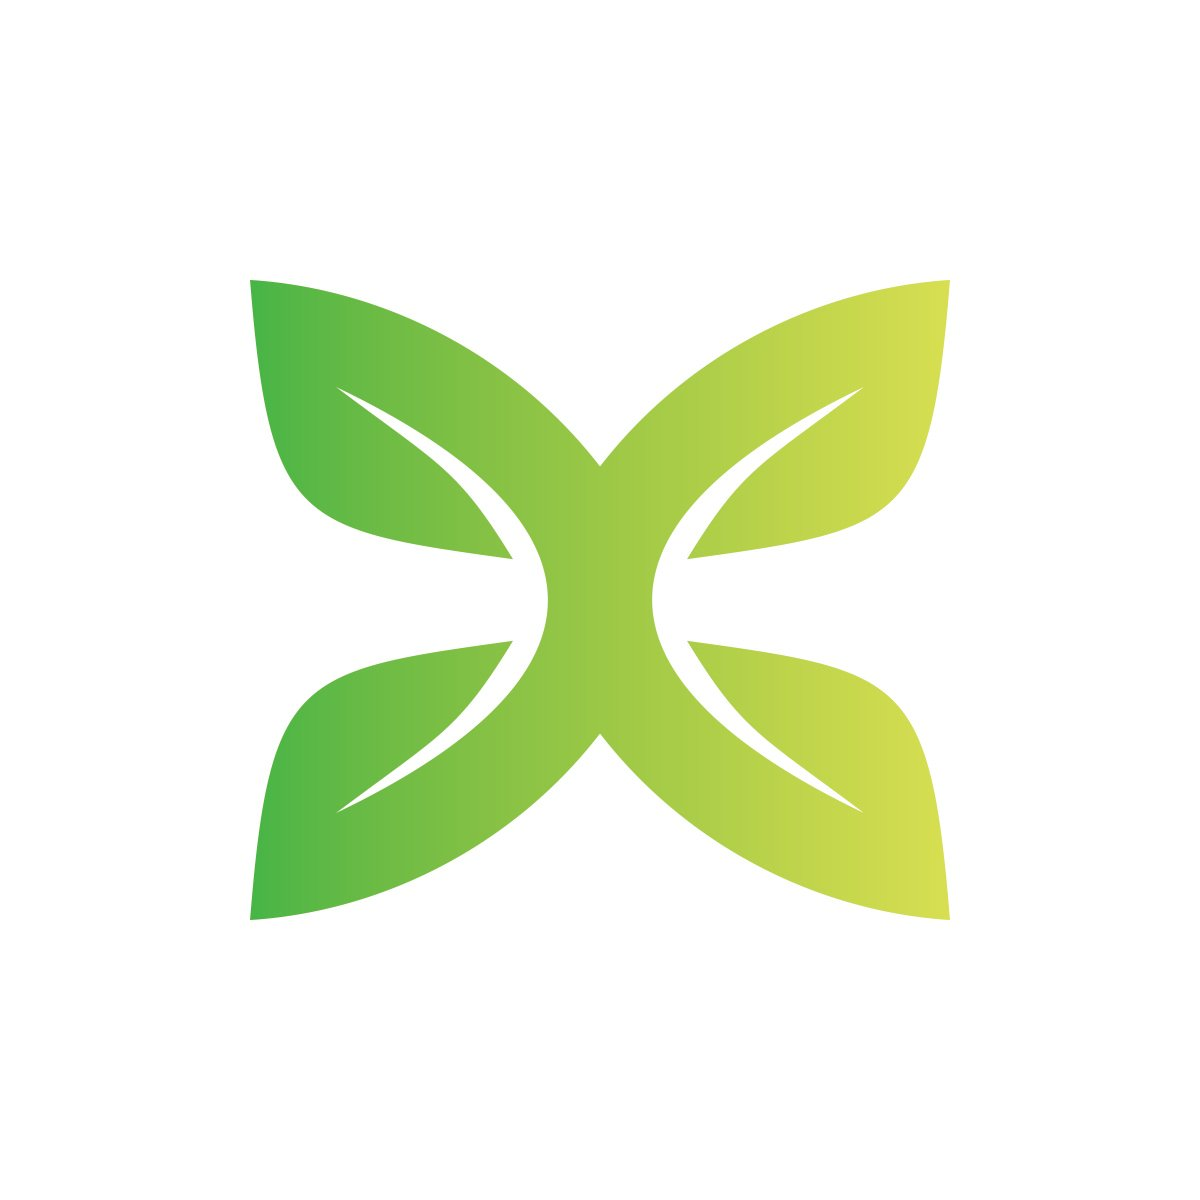 dc leaf nature symbol logo